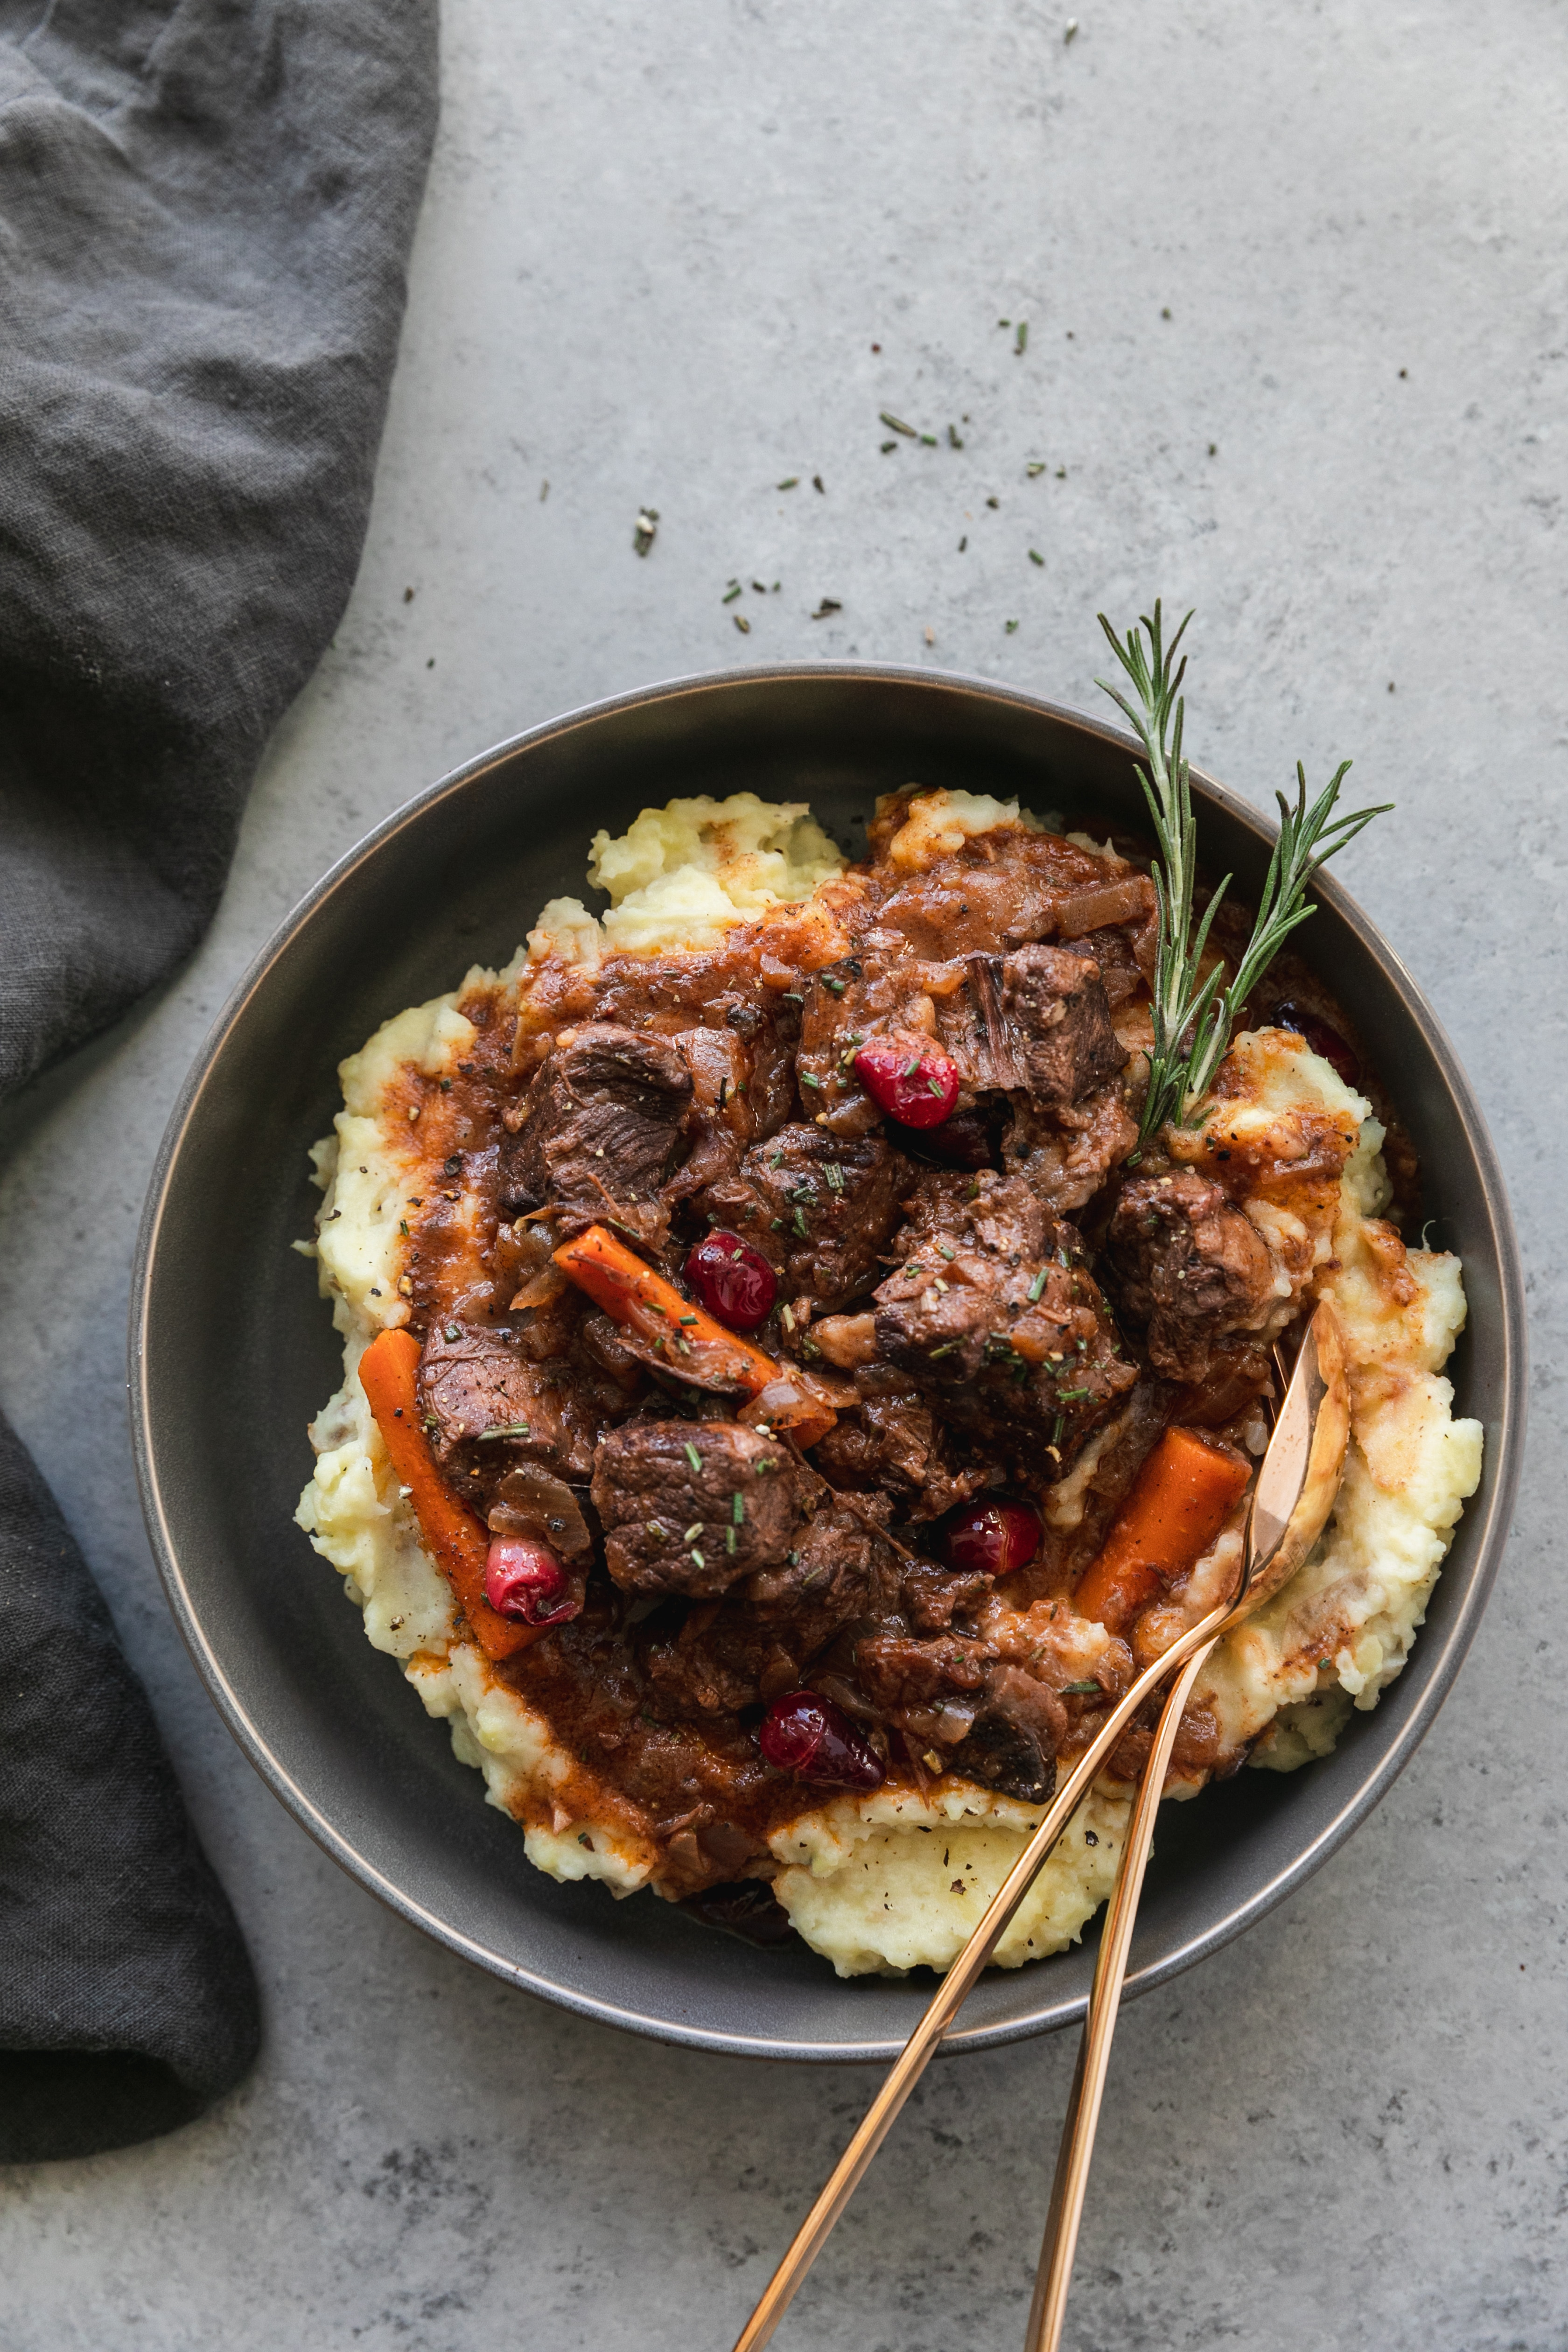 Overhead shot of a bowl of mashed potatoes topped with beef stew and a rosemary sprig with two gold spoons in the bowl